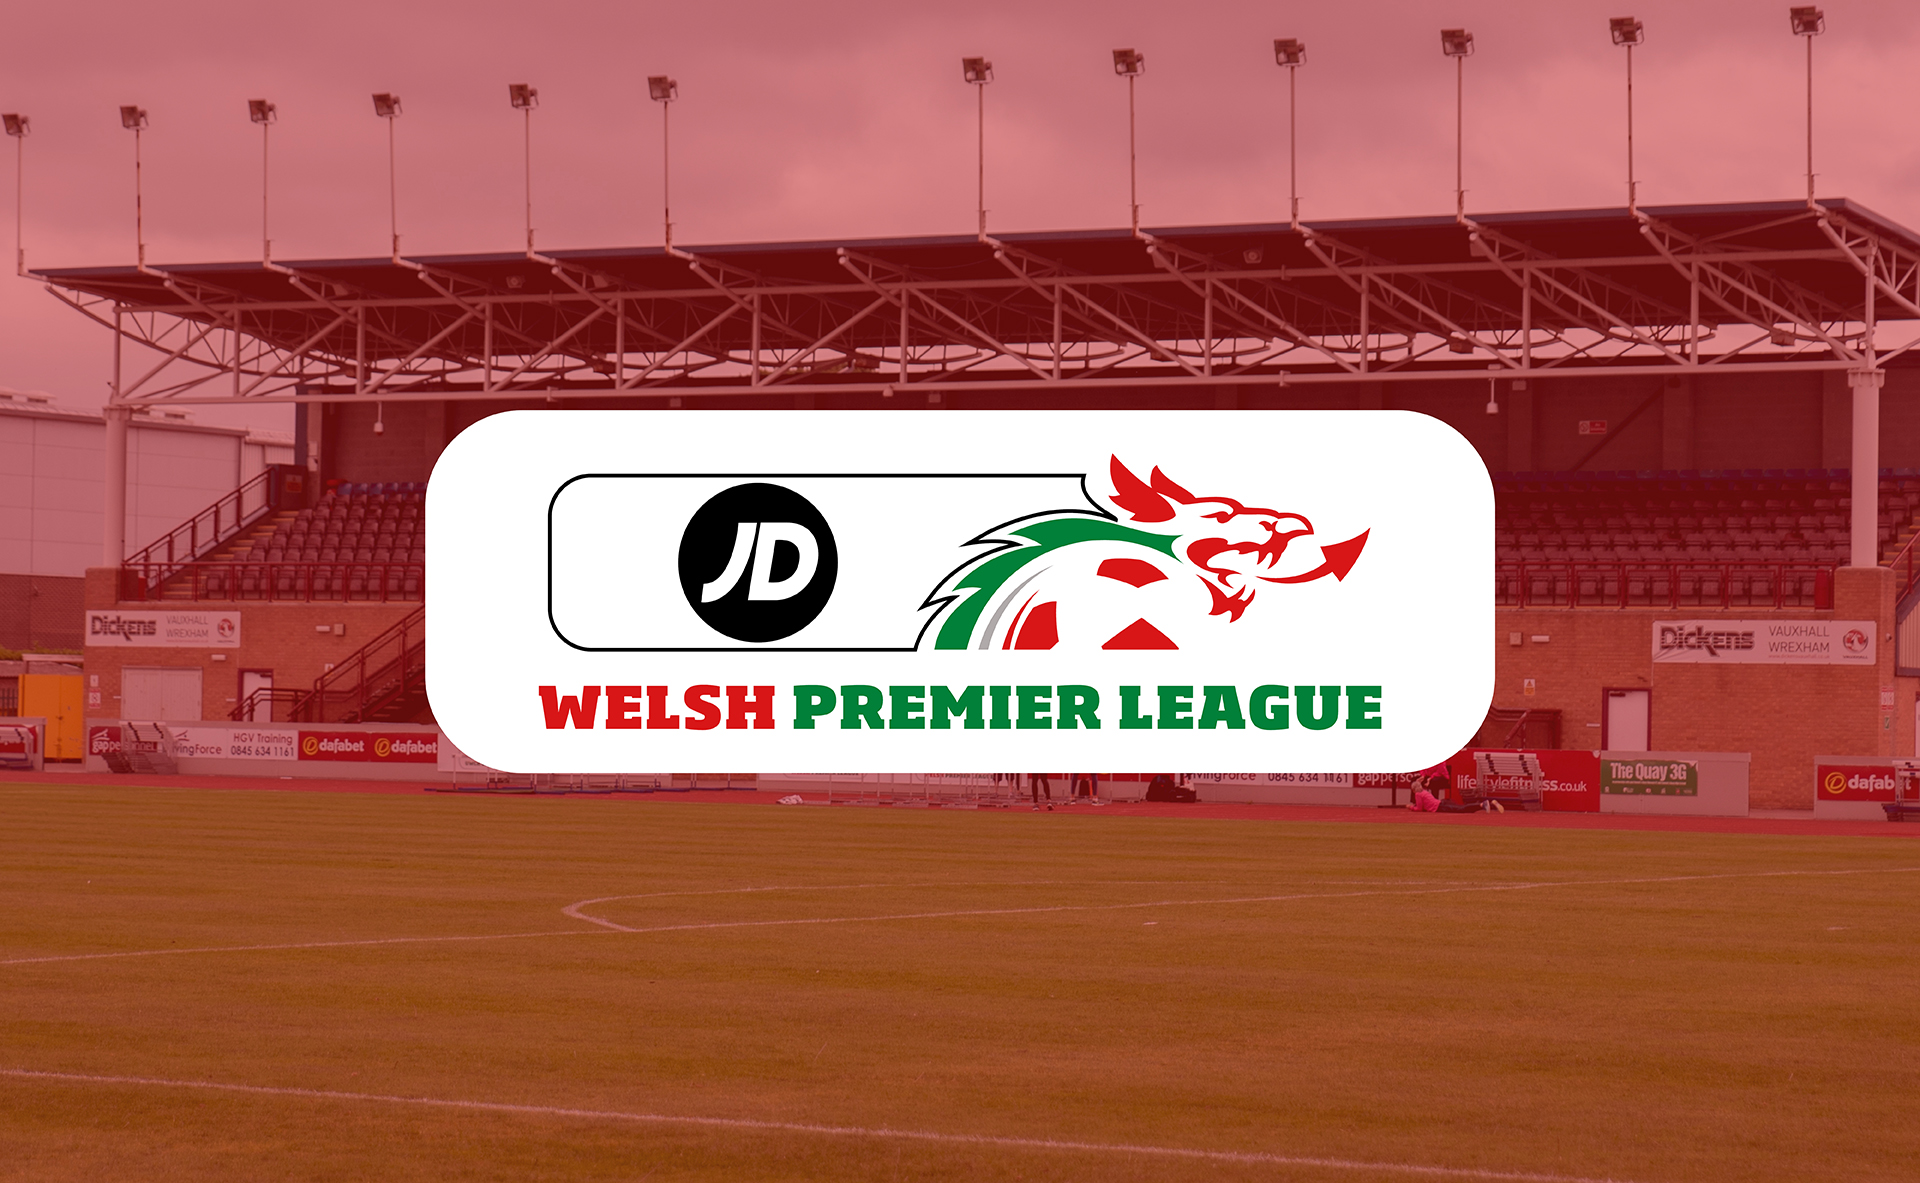 JD Welsh Premier League 2018/19 Fixtures Confirmed